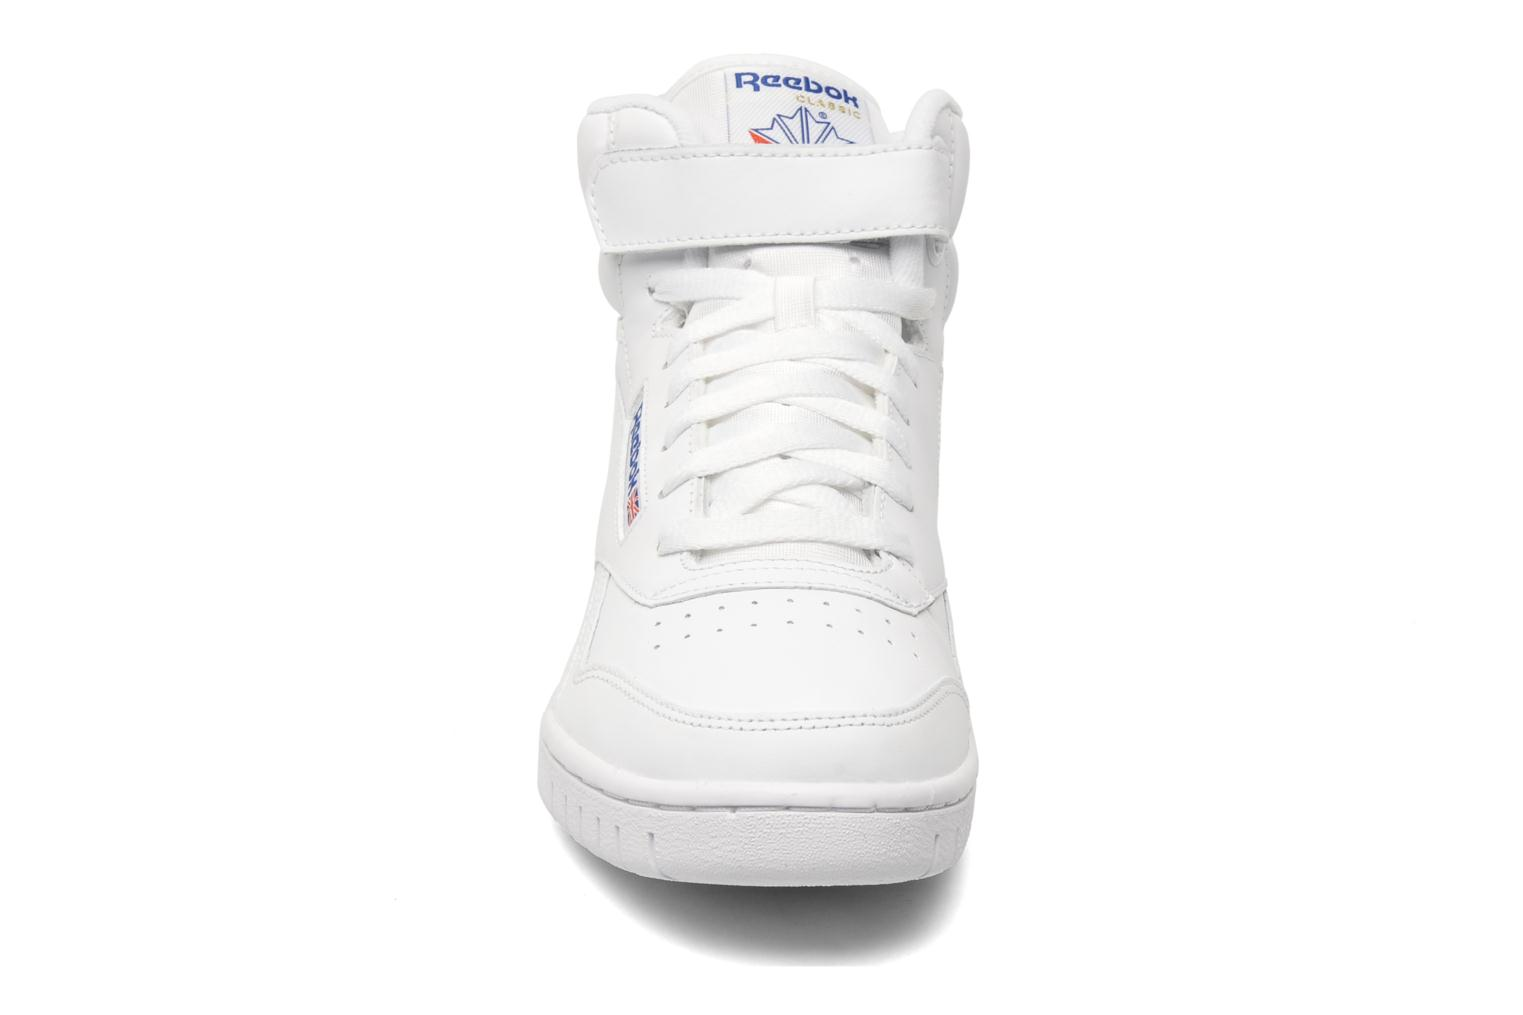 Ex-O-Fit Hi White Int